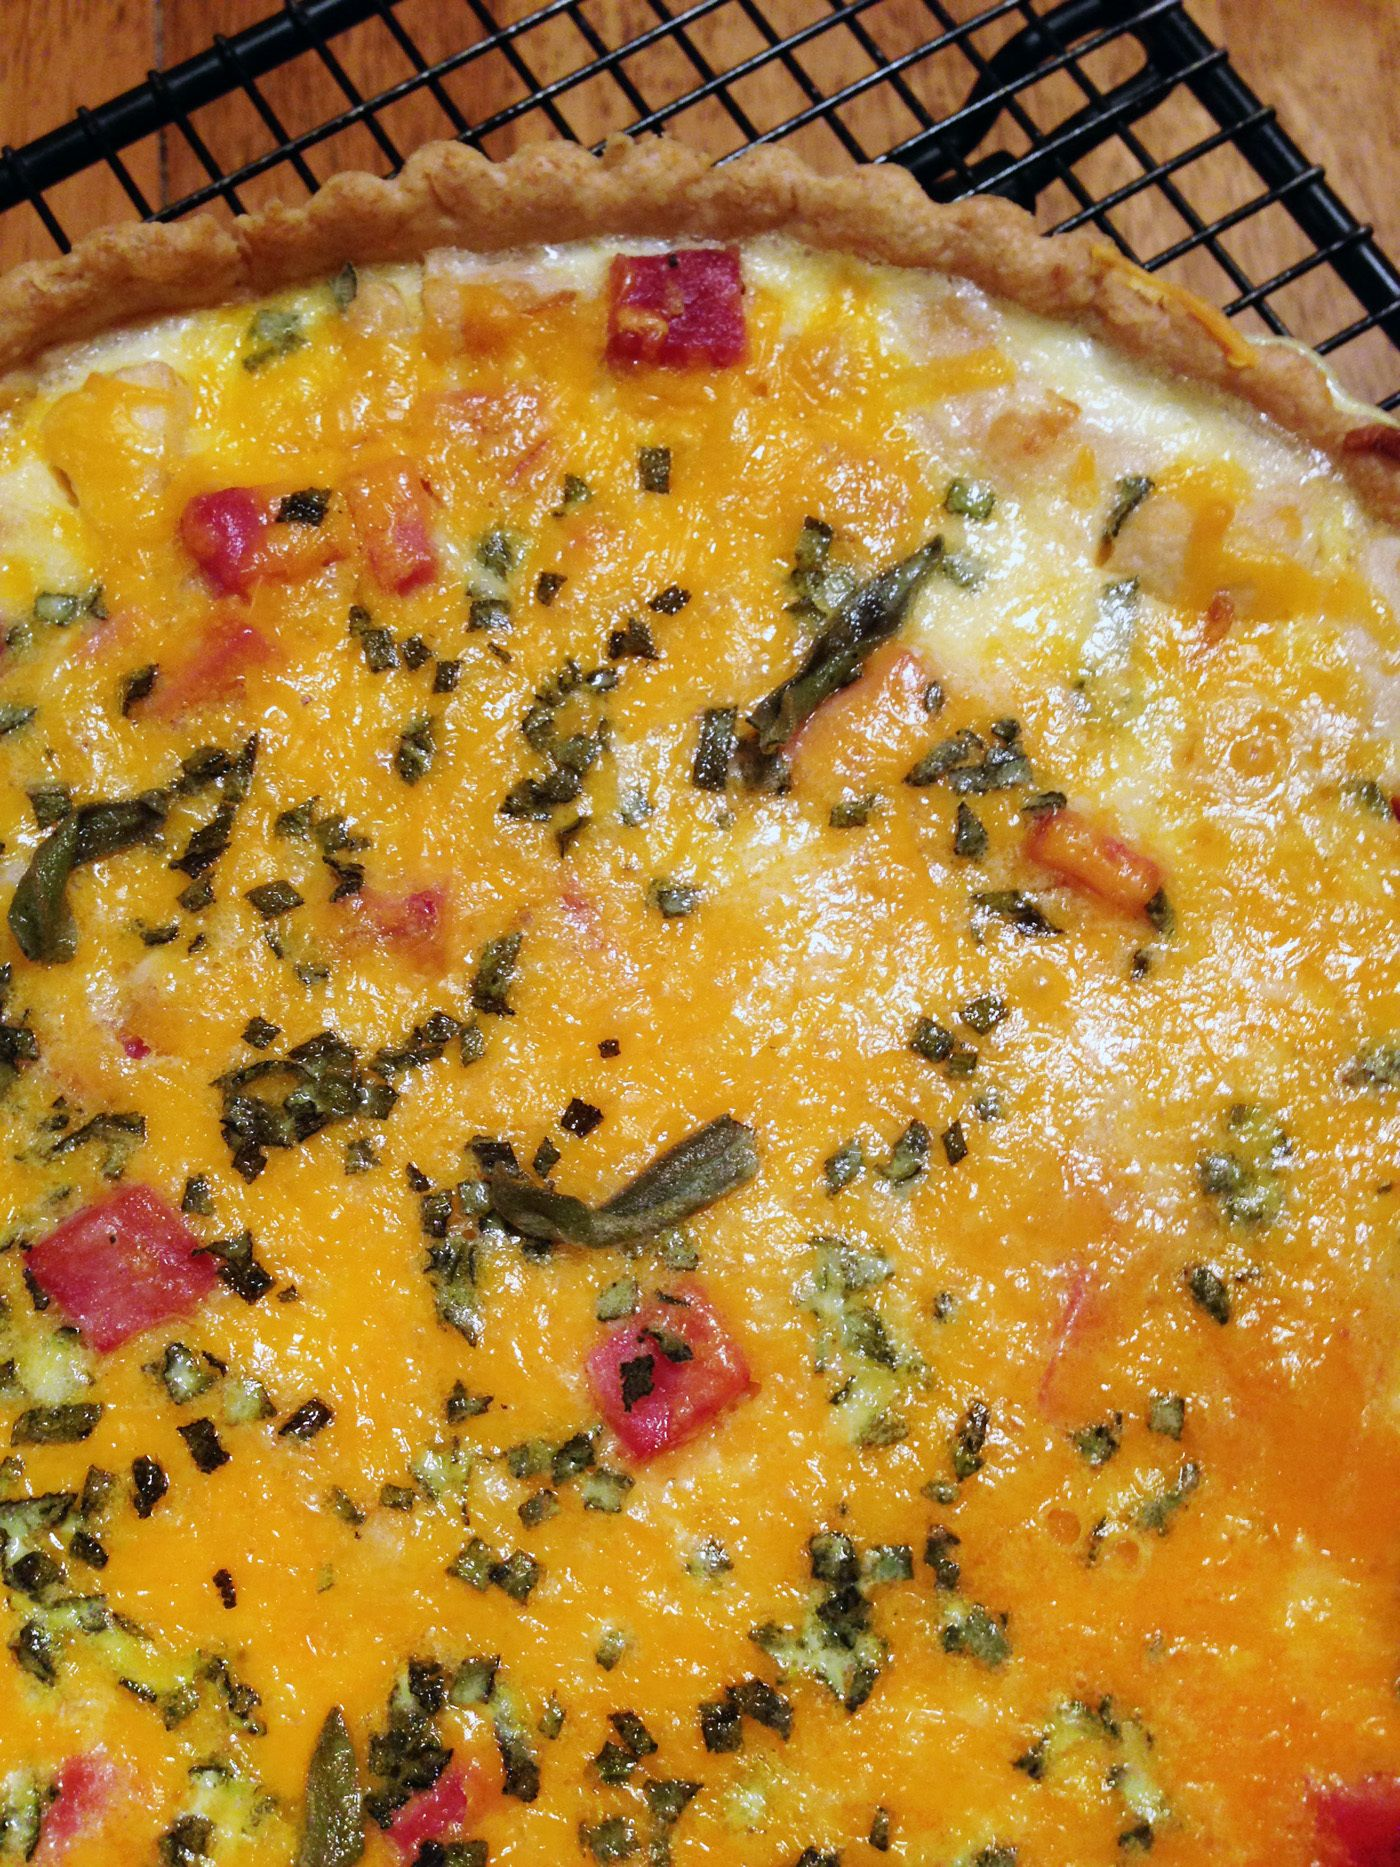 This recipe, from thefrisky.com, is unusual for the sweetness it gets from fresh apple chunks. But apple, ham, sage and cheddar all work well together.